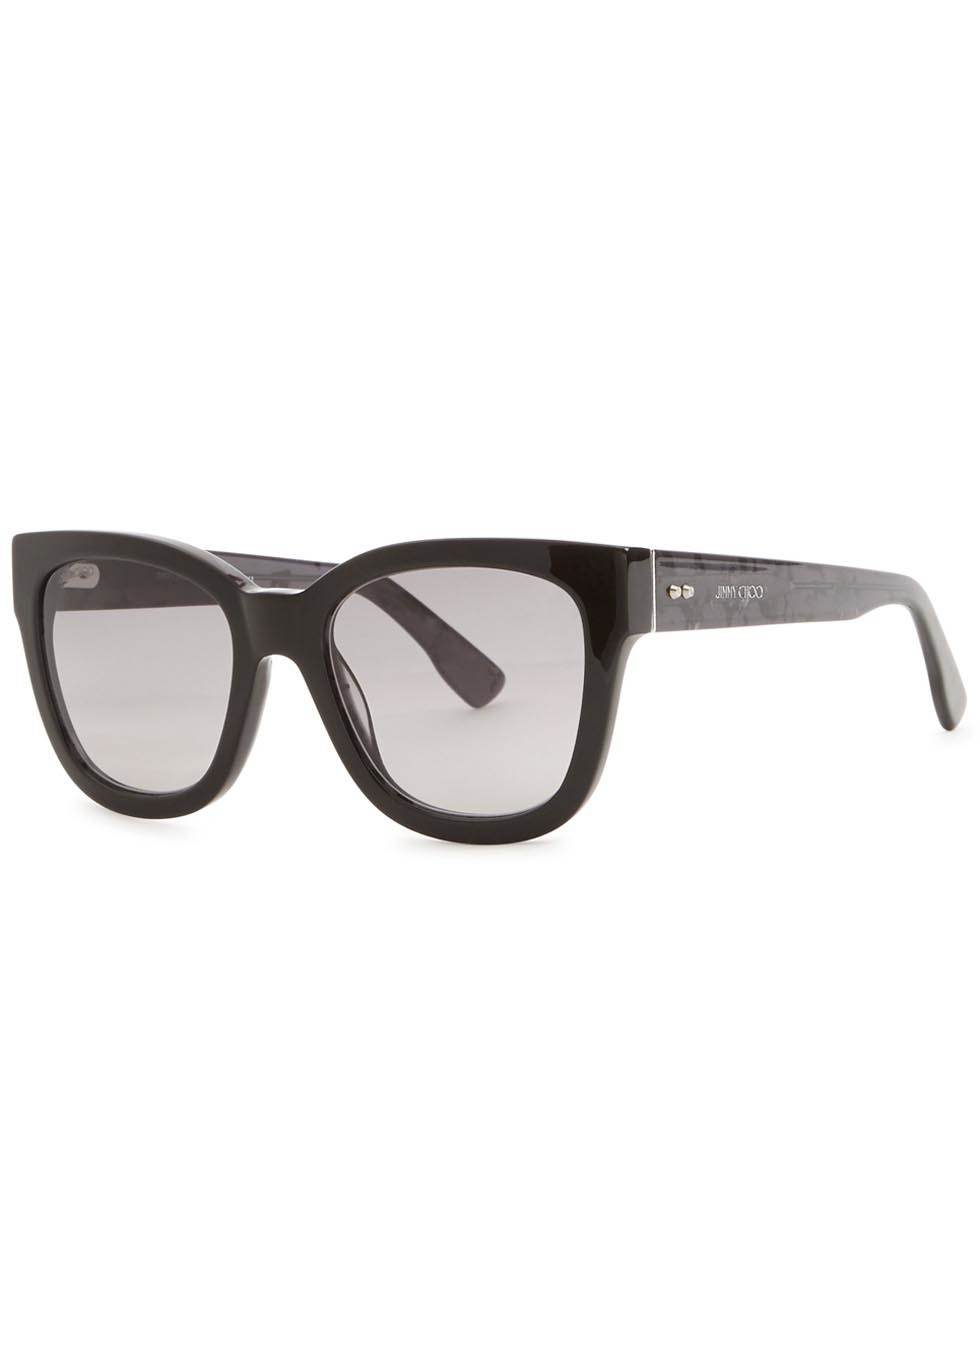 Otti Black Wayfarer Style Sunglasses - predominant colour: black; occasions: casual, holiday; style: d frame; size: standard; material: plastic/rubber; pattern: plain; finish: plain; season: a/w 2015; wardrobe: basic